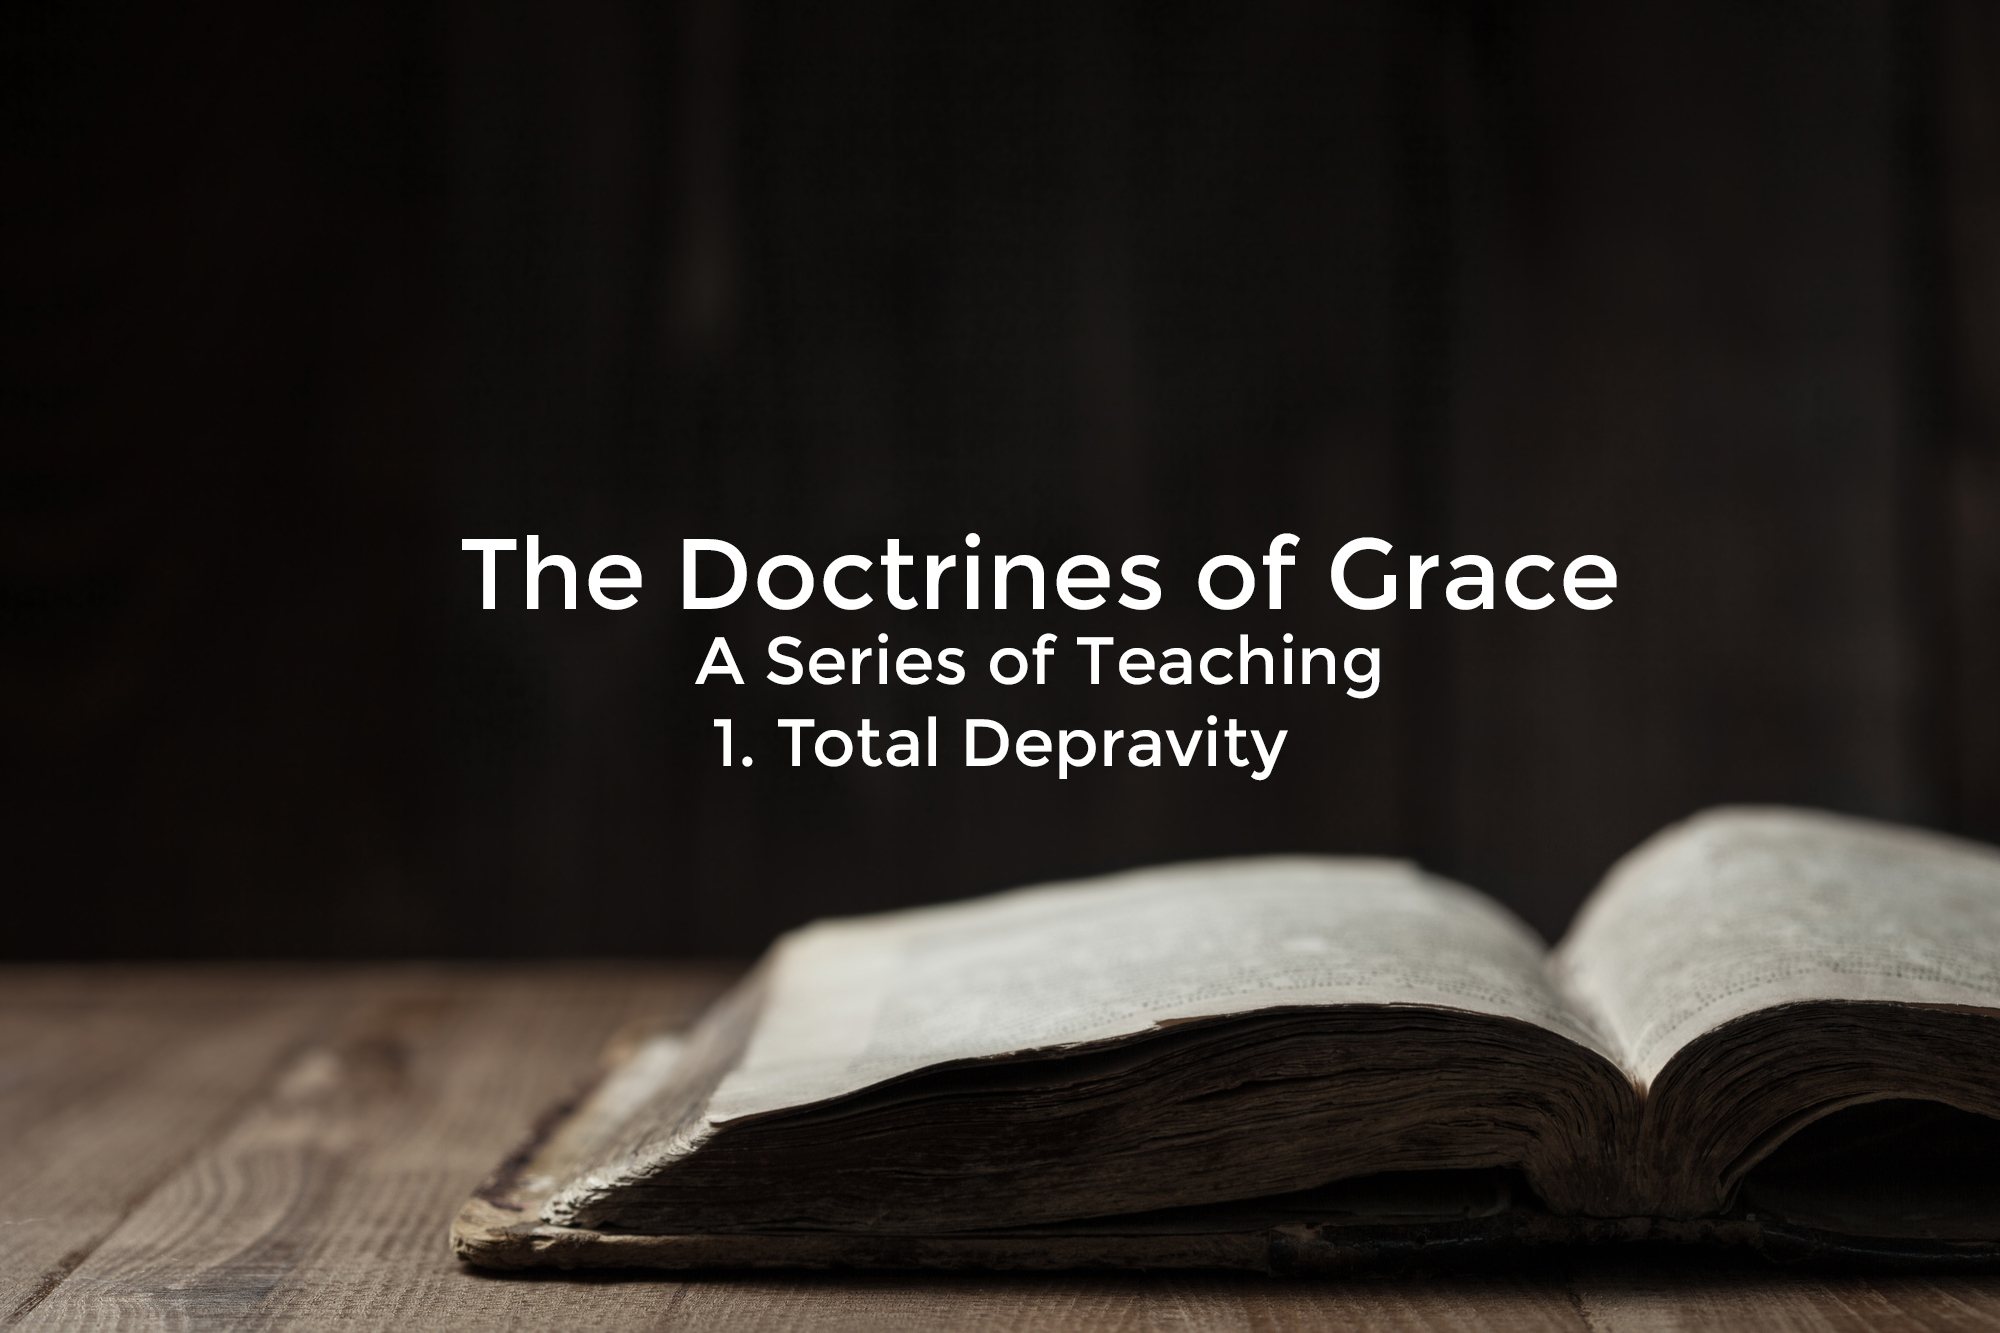 661: Comparing Kingdom and Grace Doctrines